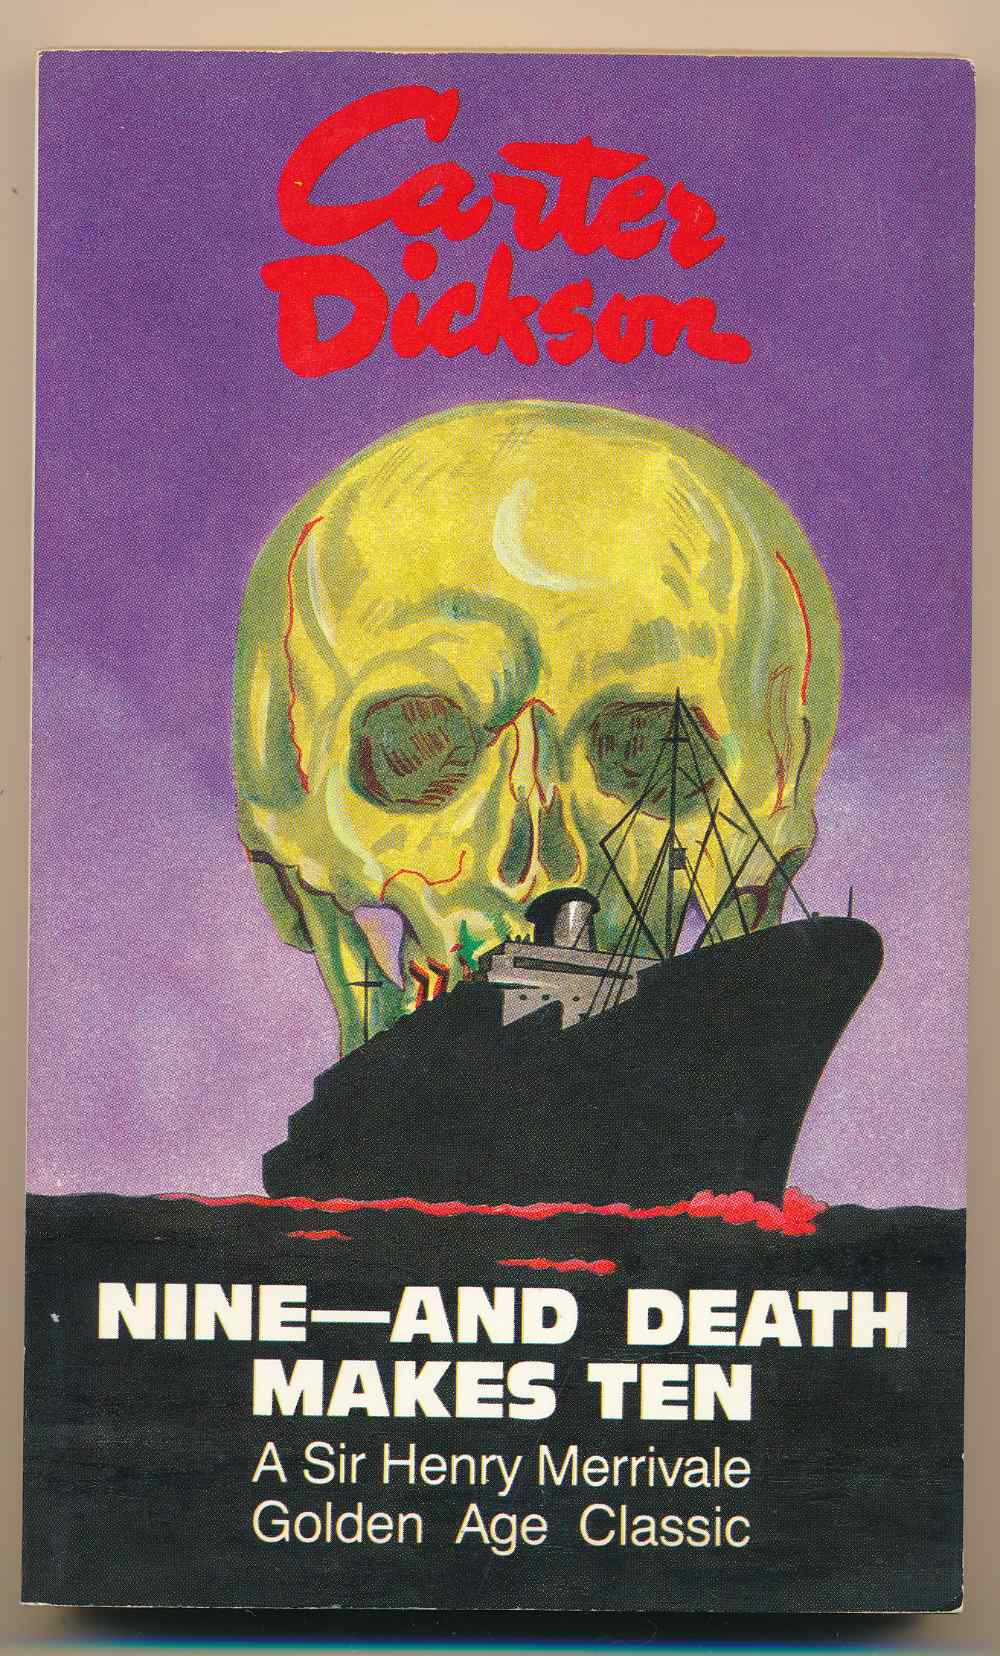 Nine - and death makes ten